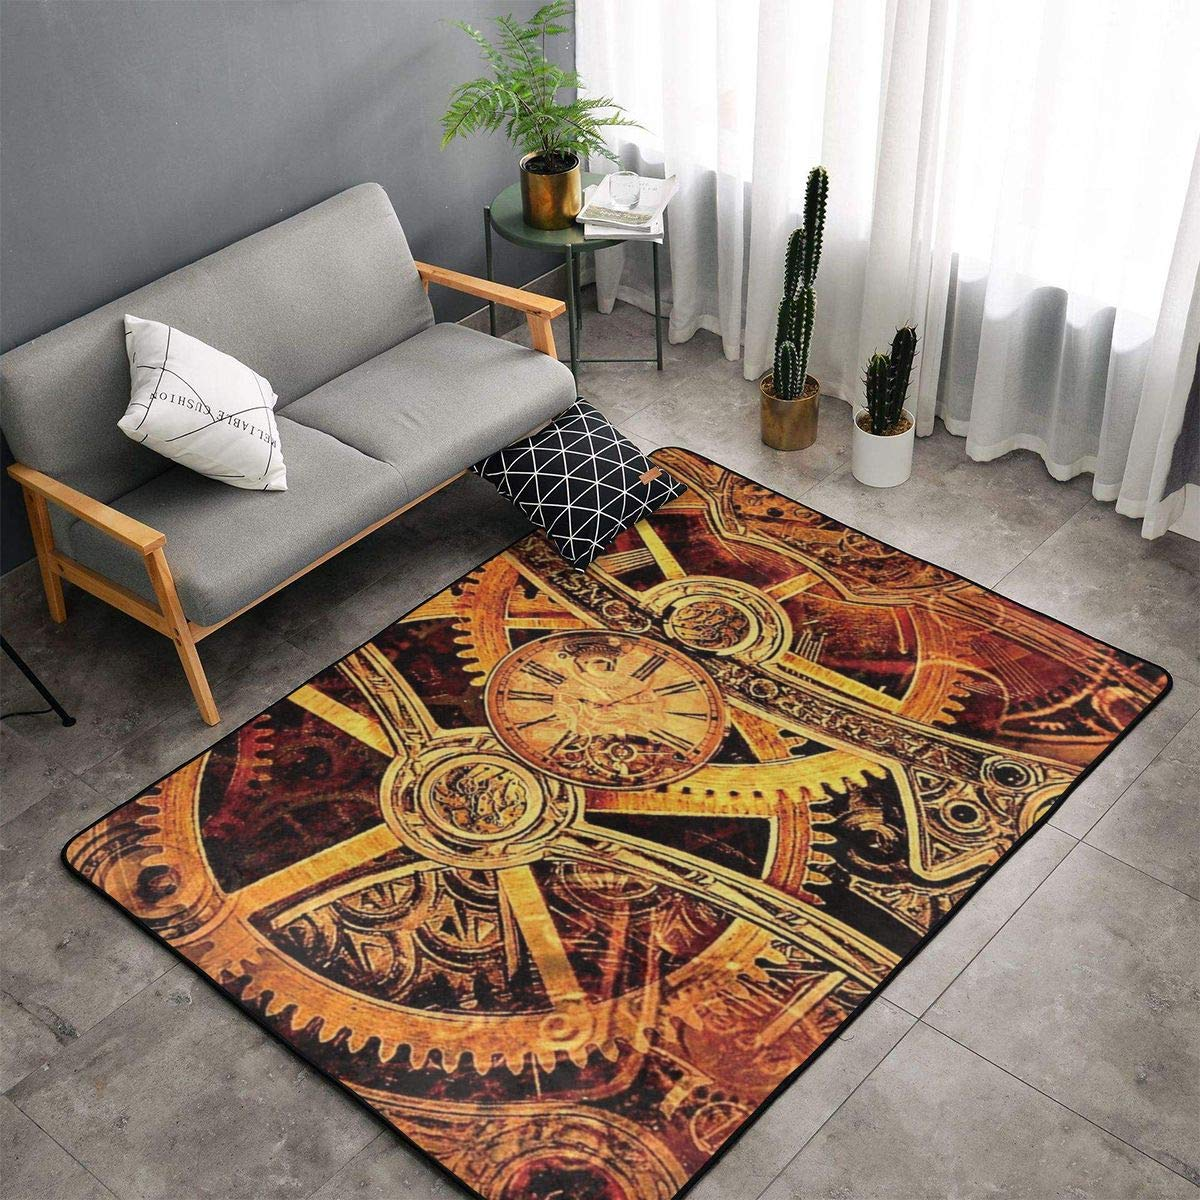 Bedroom Livingroom Sitting-Room Queen Size Area Rug Home Decor - Cool Steampunk Gears Floor Pad Rugs Quick Dry Throw Bath Rugs Yoga Mat Non-Slip Throw ...